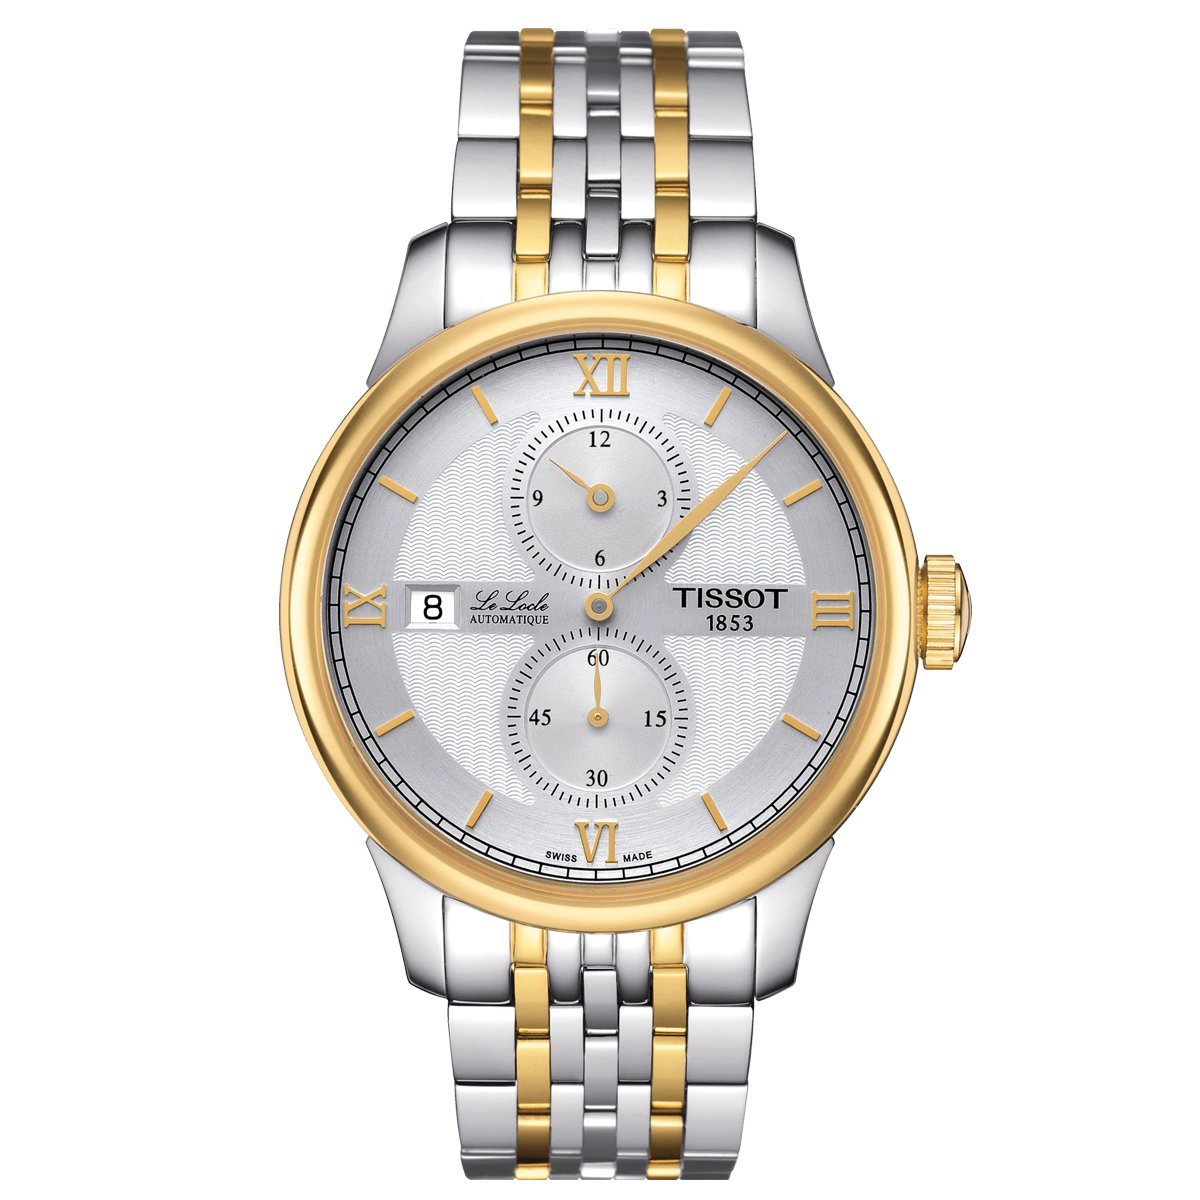 Tissot T-Classic Le Locle Regulator Gold - Watches & Crystals